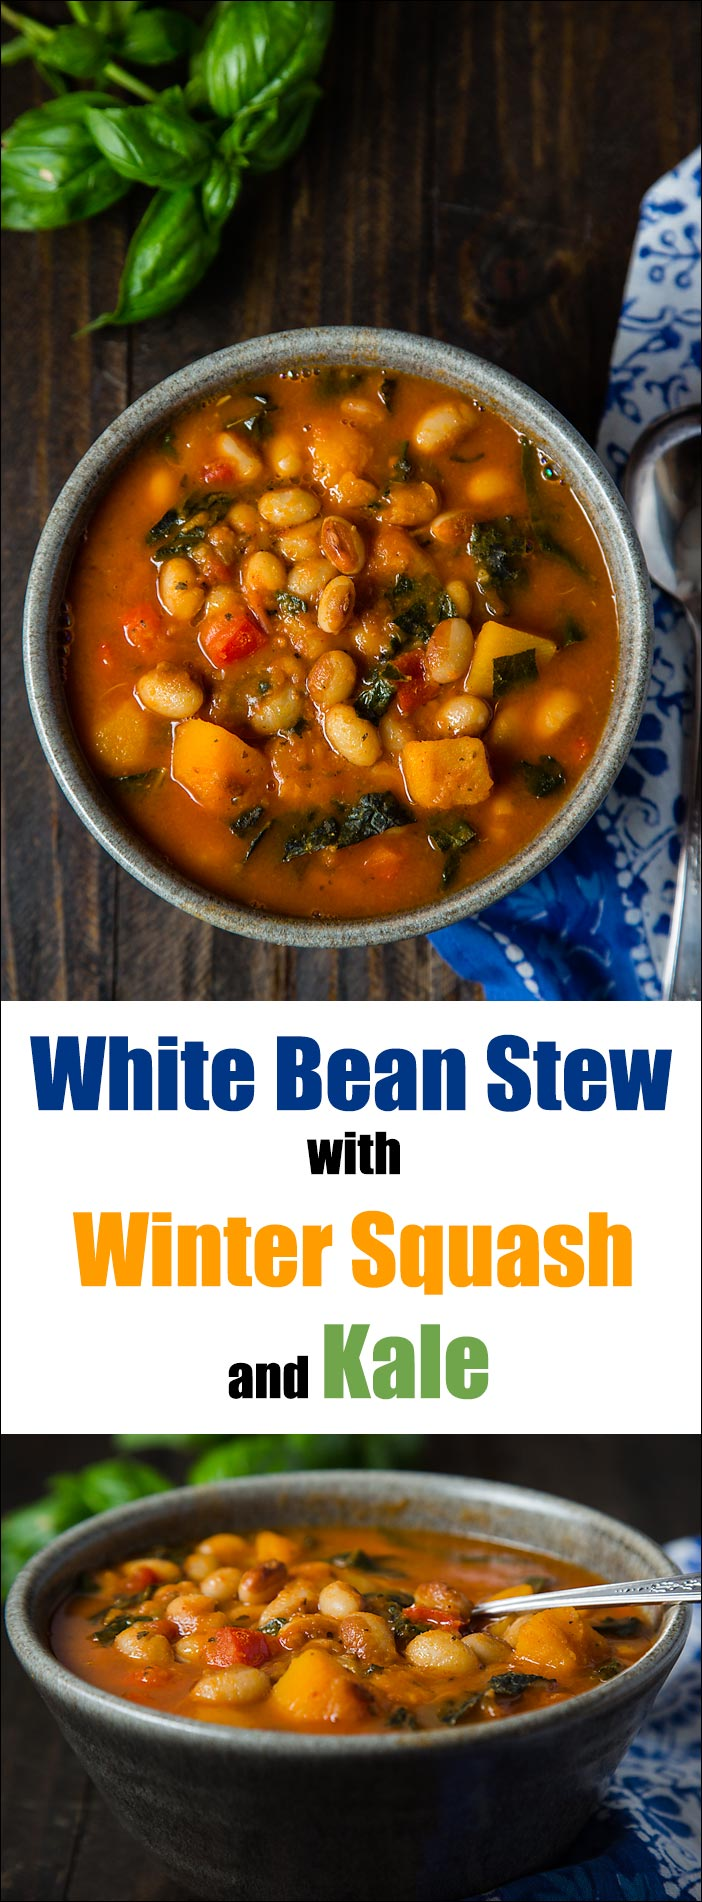 This vegan white bean stew includes butternut squash, kale, and fresh basil for a hearty and flavorful one-pot meal.